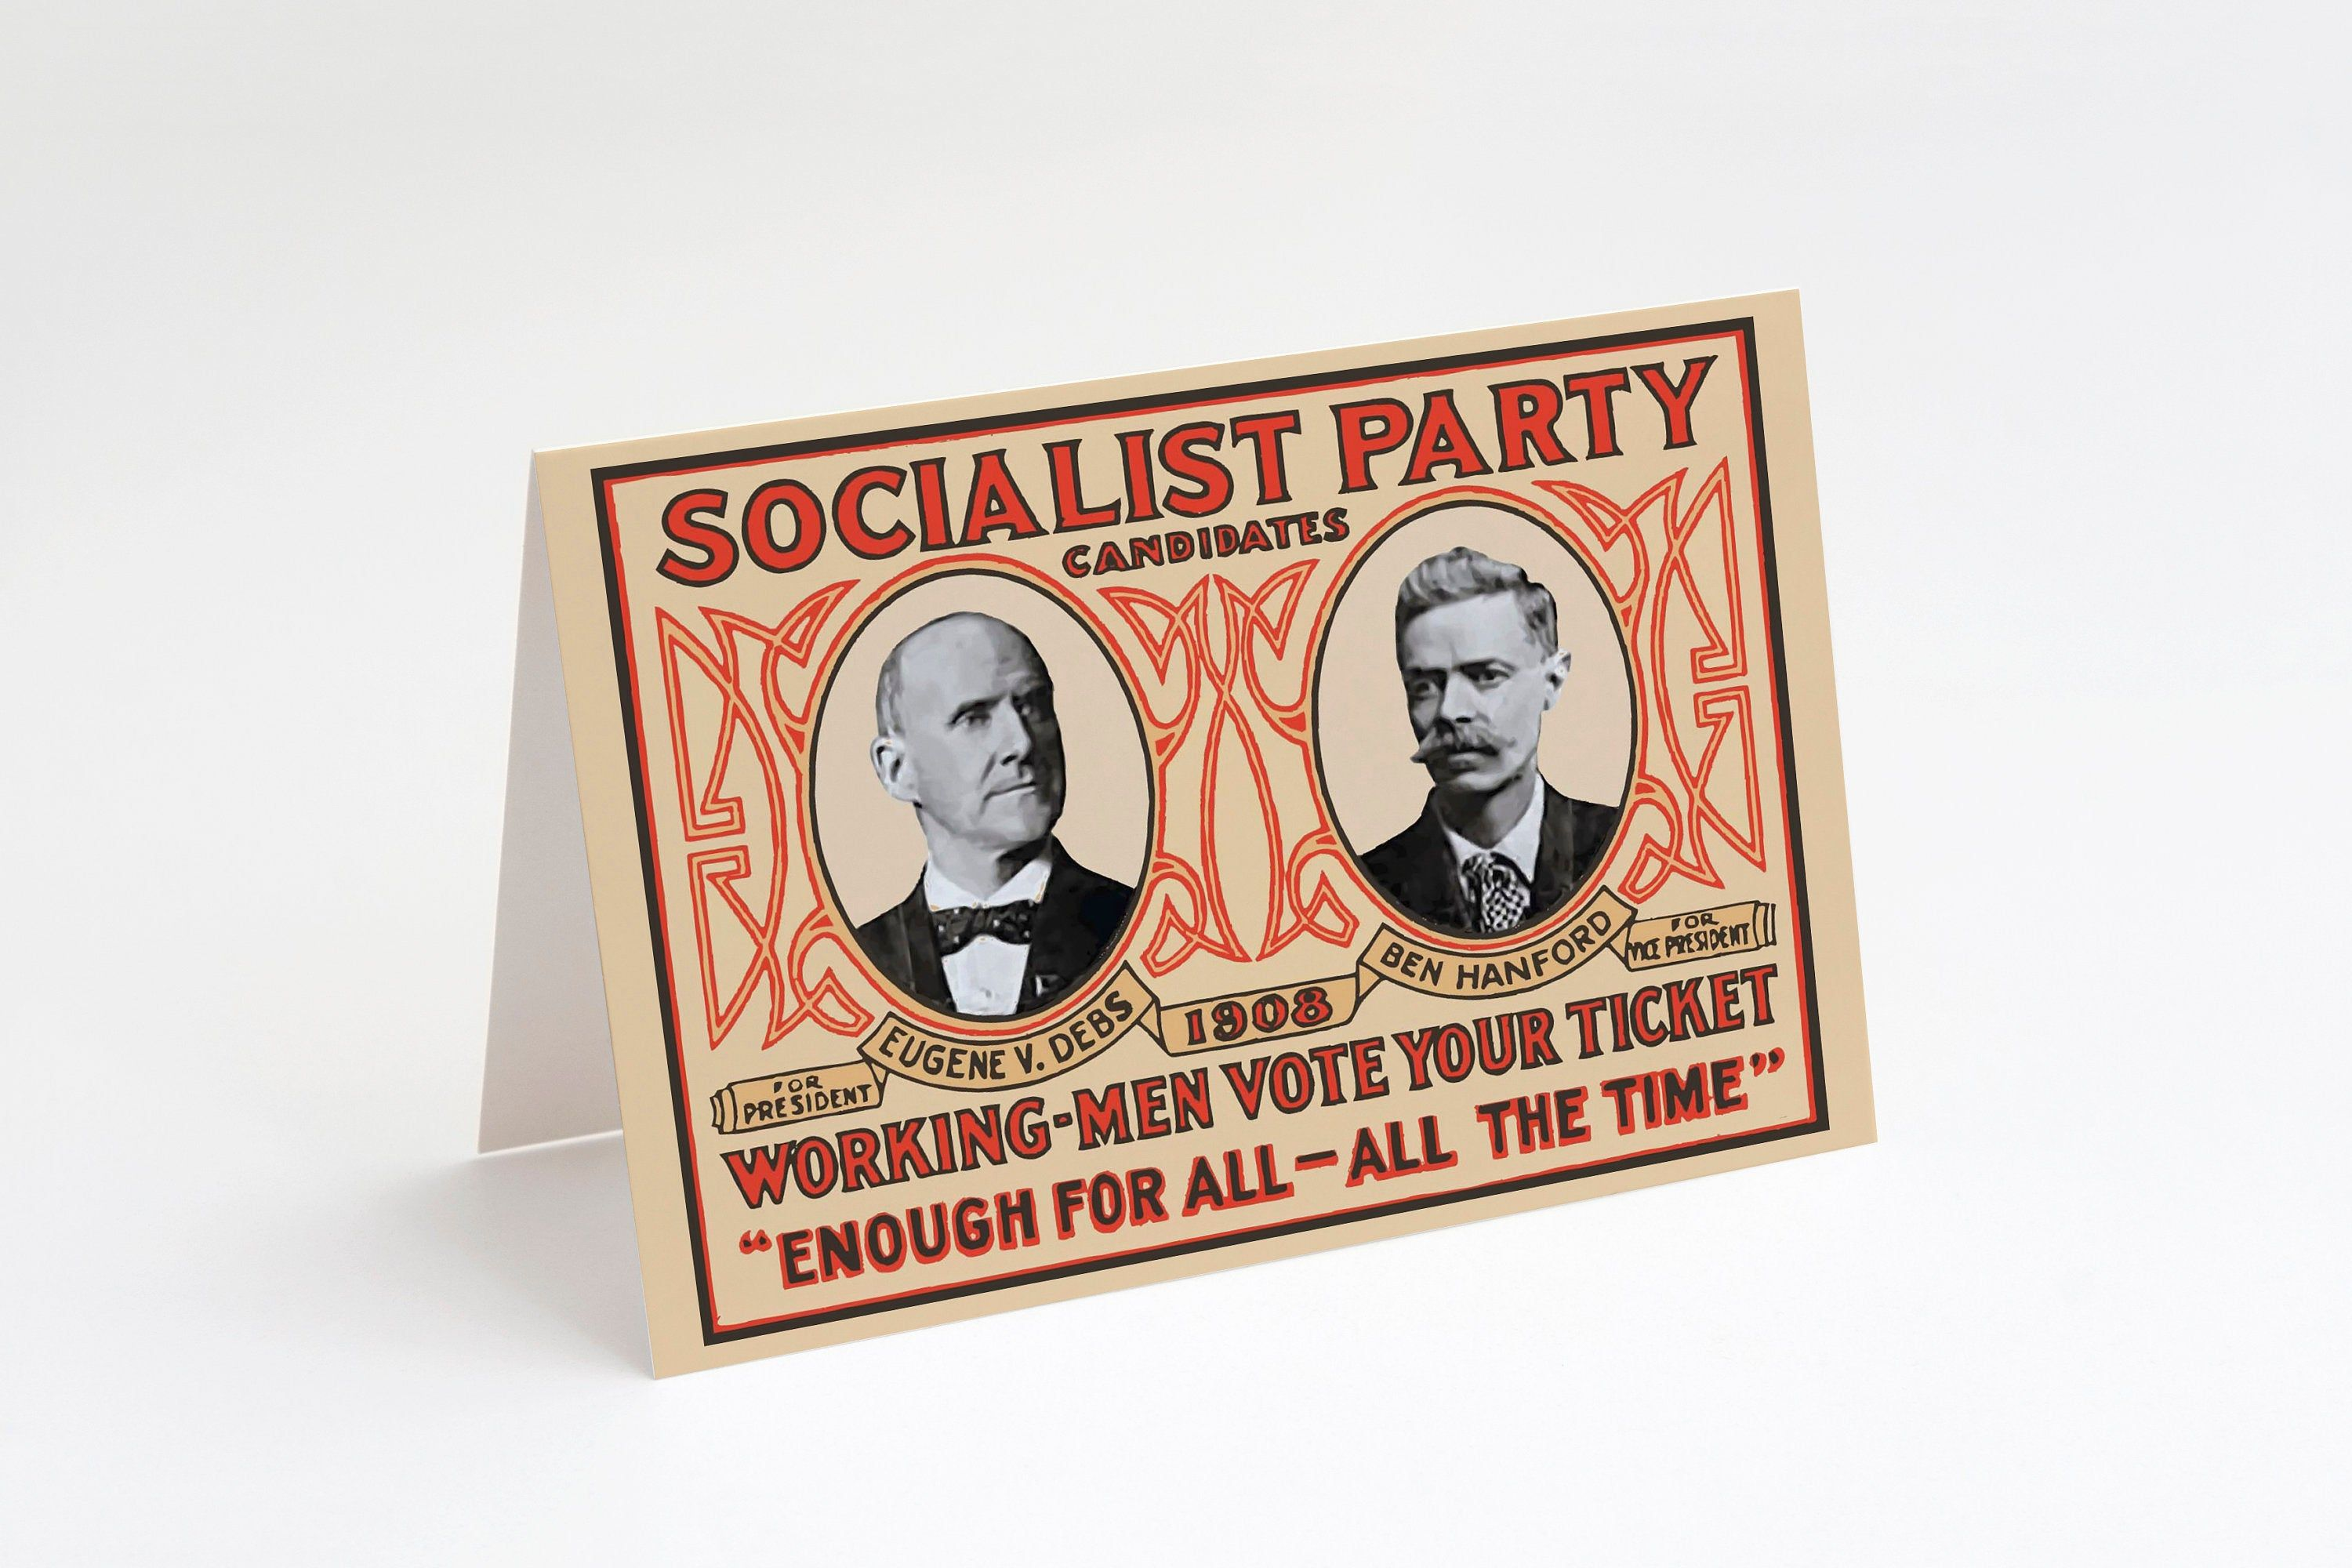 Socialist Party 1908 Campaign Poster Notecard 5x7 A7 Printable Blank Card Leftist Edwardian Socialism Printable Note Cards Campaign Posters Retro Printables